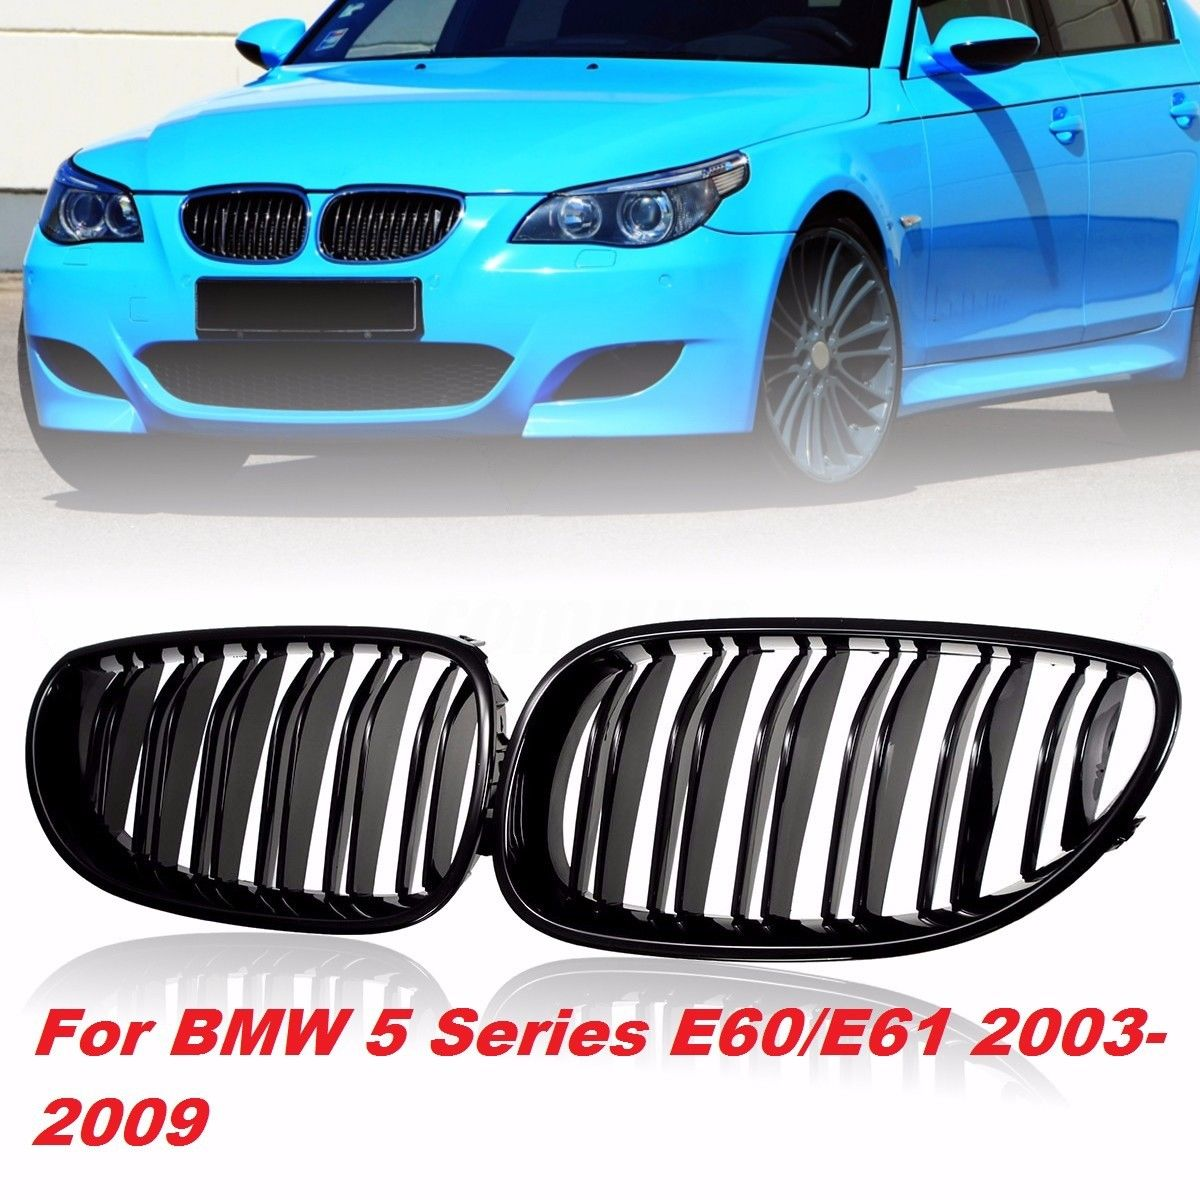 2pcs Front Kidney Grilles Grill Gloss Black ABS Double Line Grille For <font><b>BMW</b></font> E60 <font><b>E61</b></font> 5 SERIES 2003-2009 image